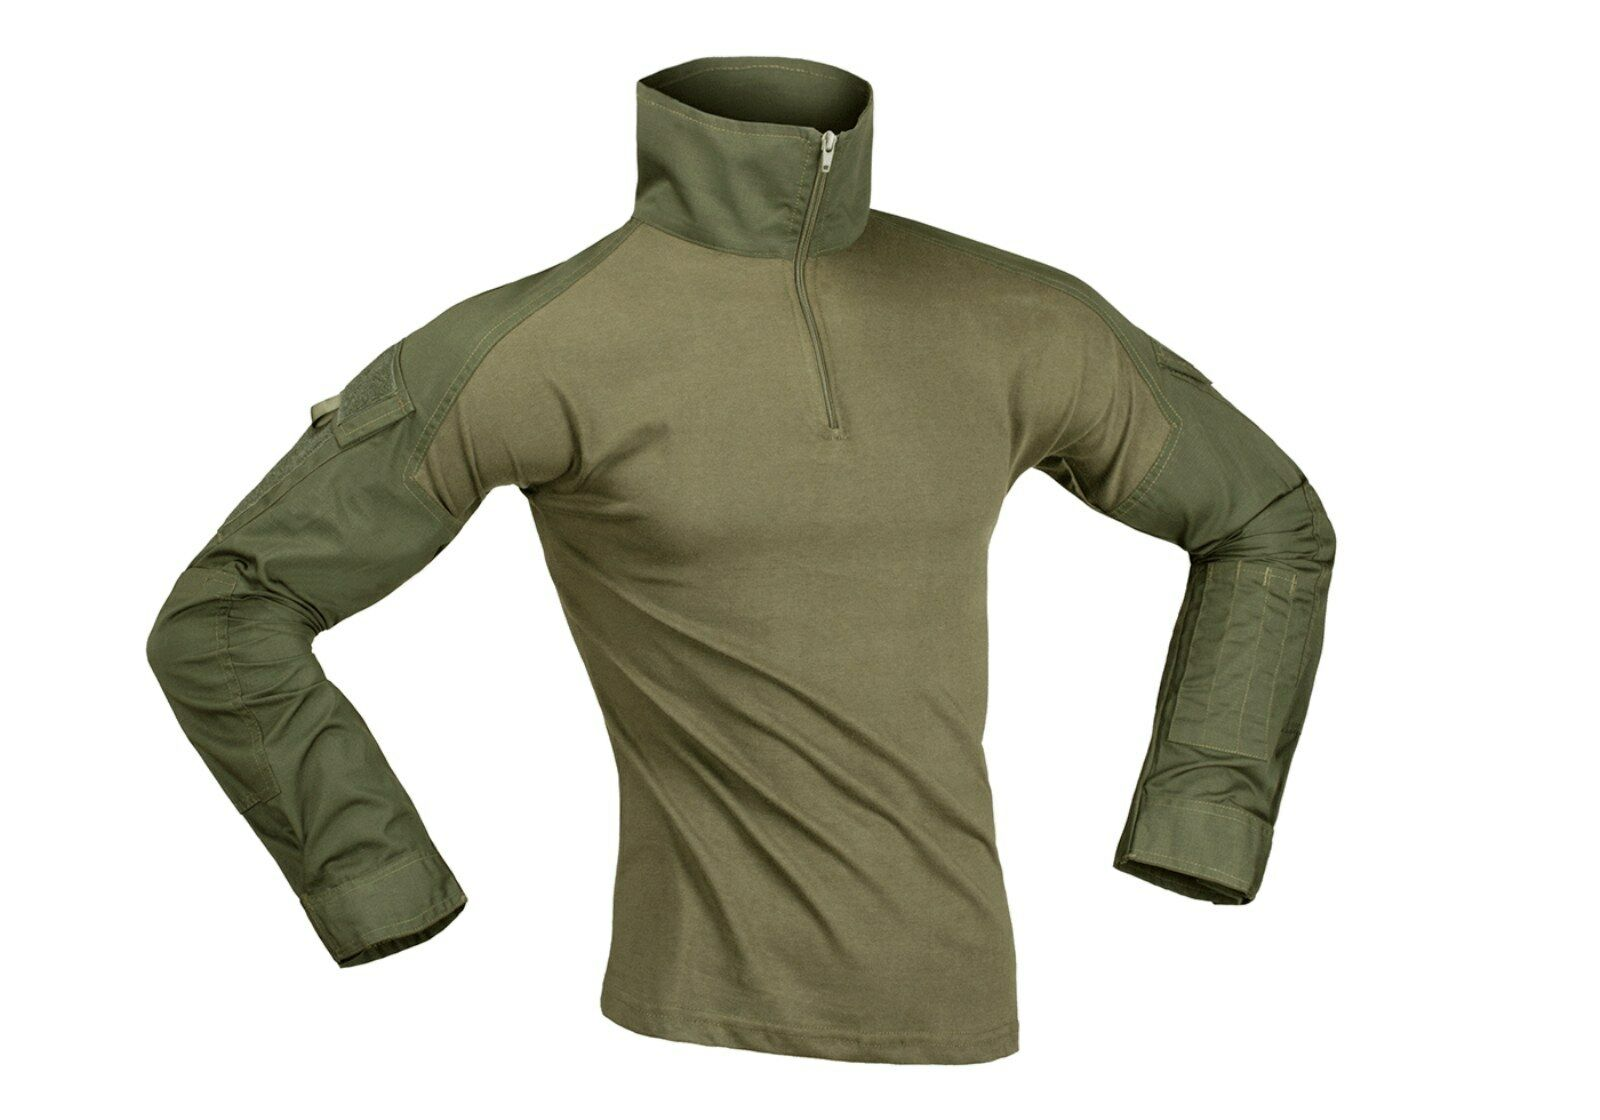 InvaderGear  Professional Military Tactical Army Shirt - OD Green - Brand new